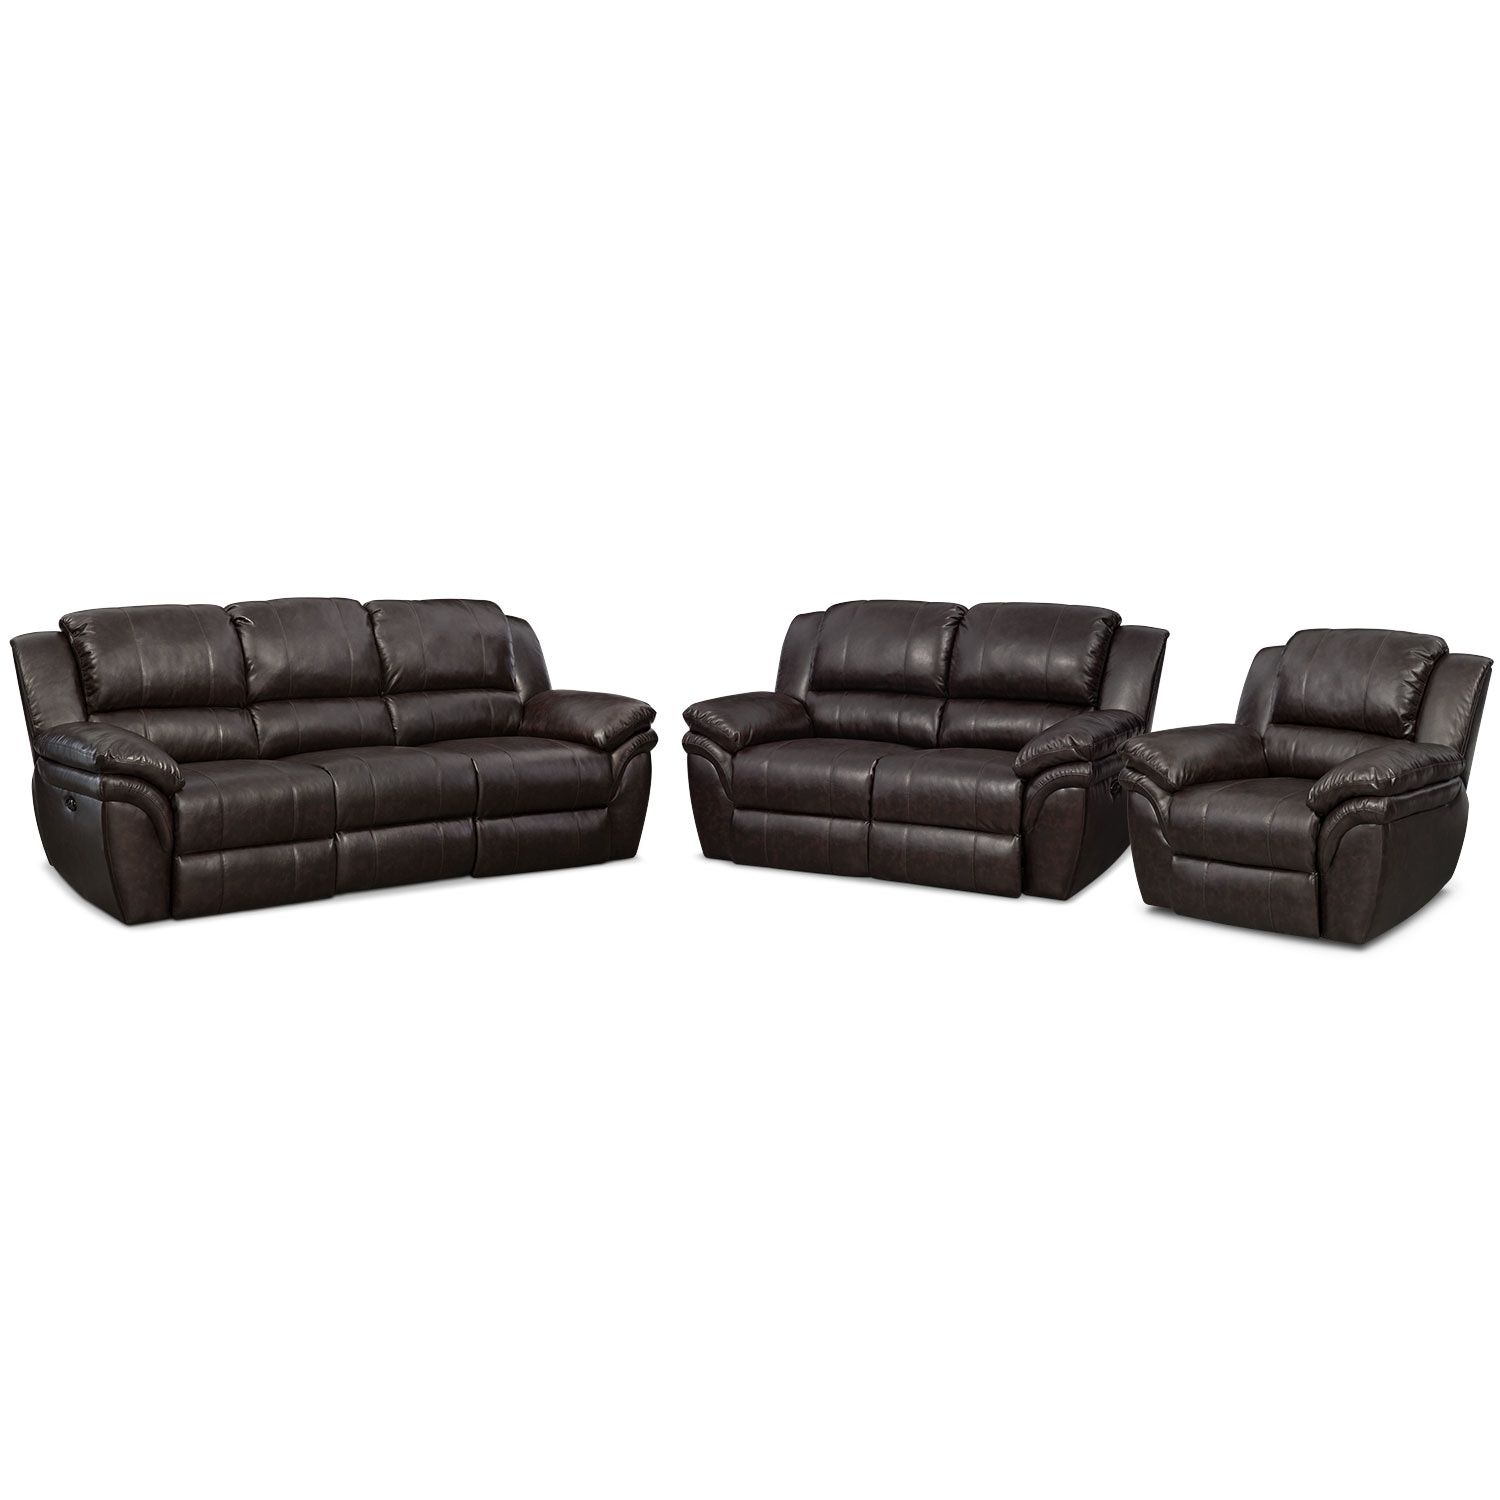 Living Room Furniture - Omni Brown 3 Pc. Power Reclining Living Room